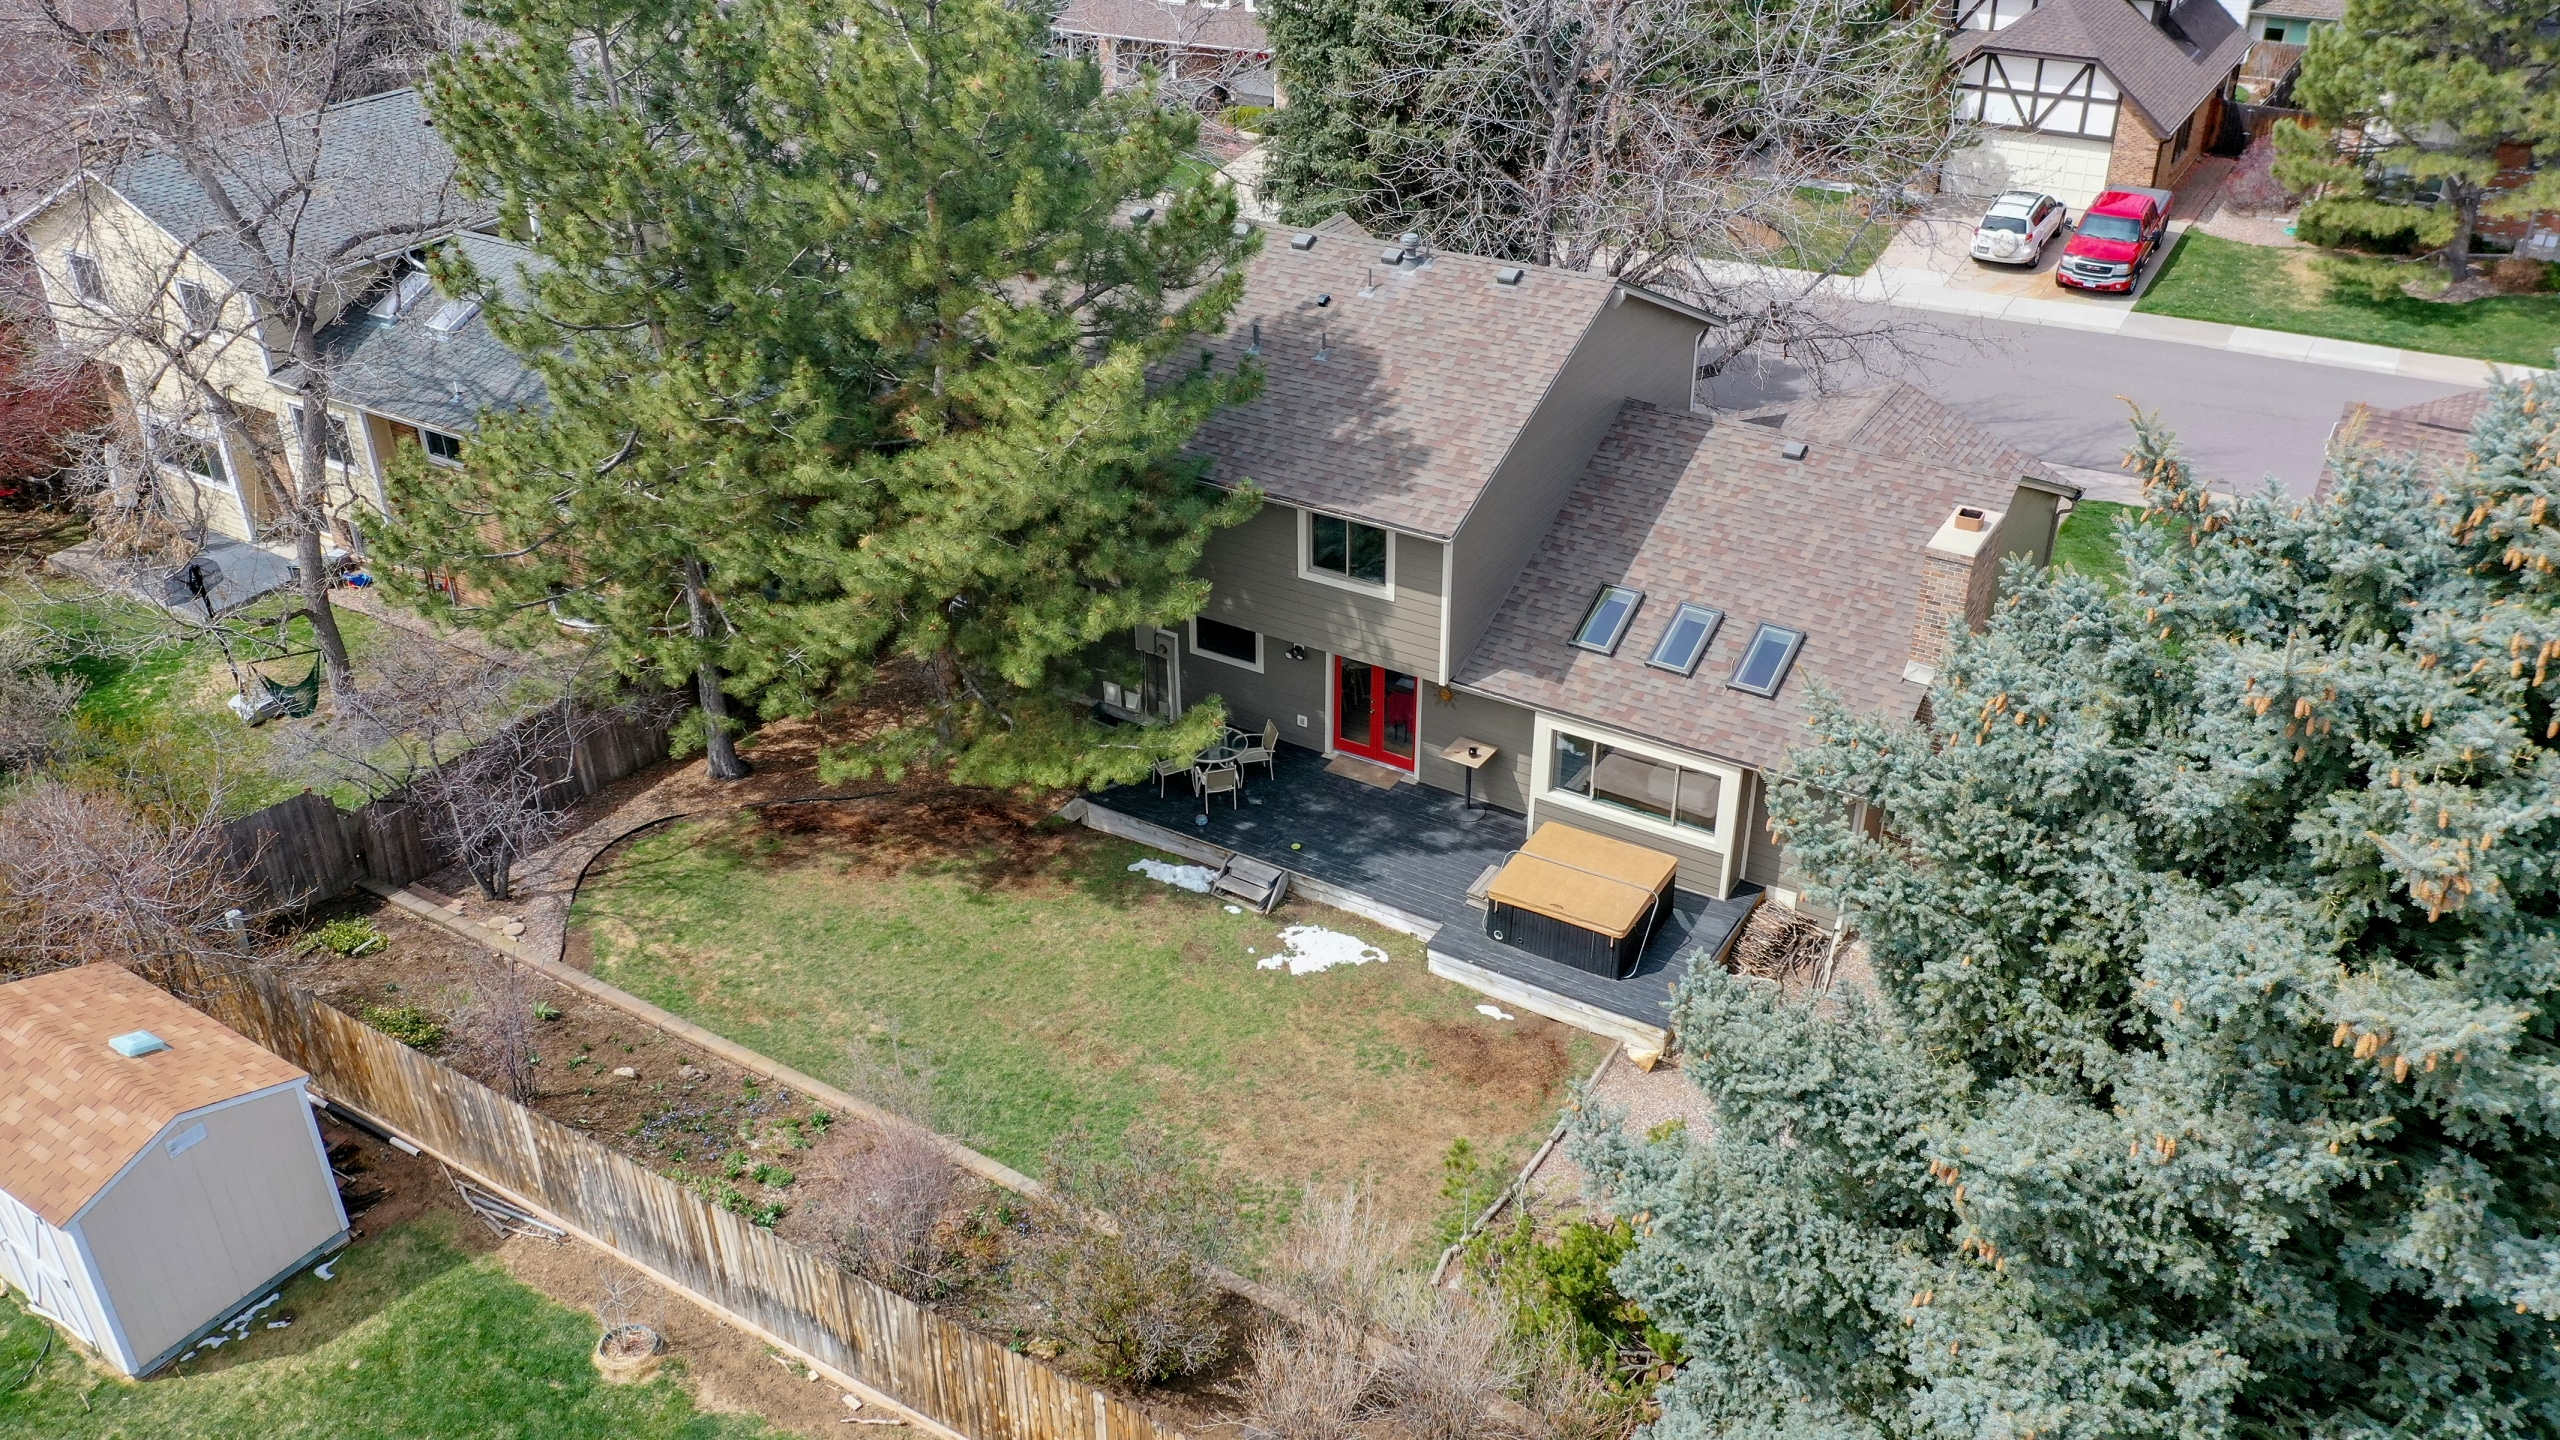 Aerial View of backyard from a drone in Centennial Colorado